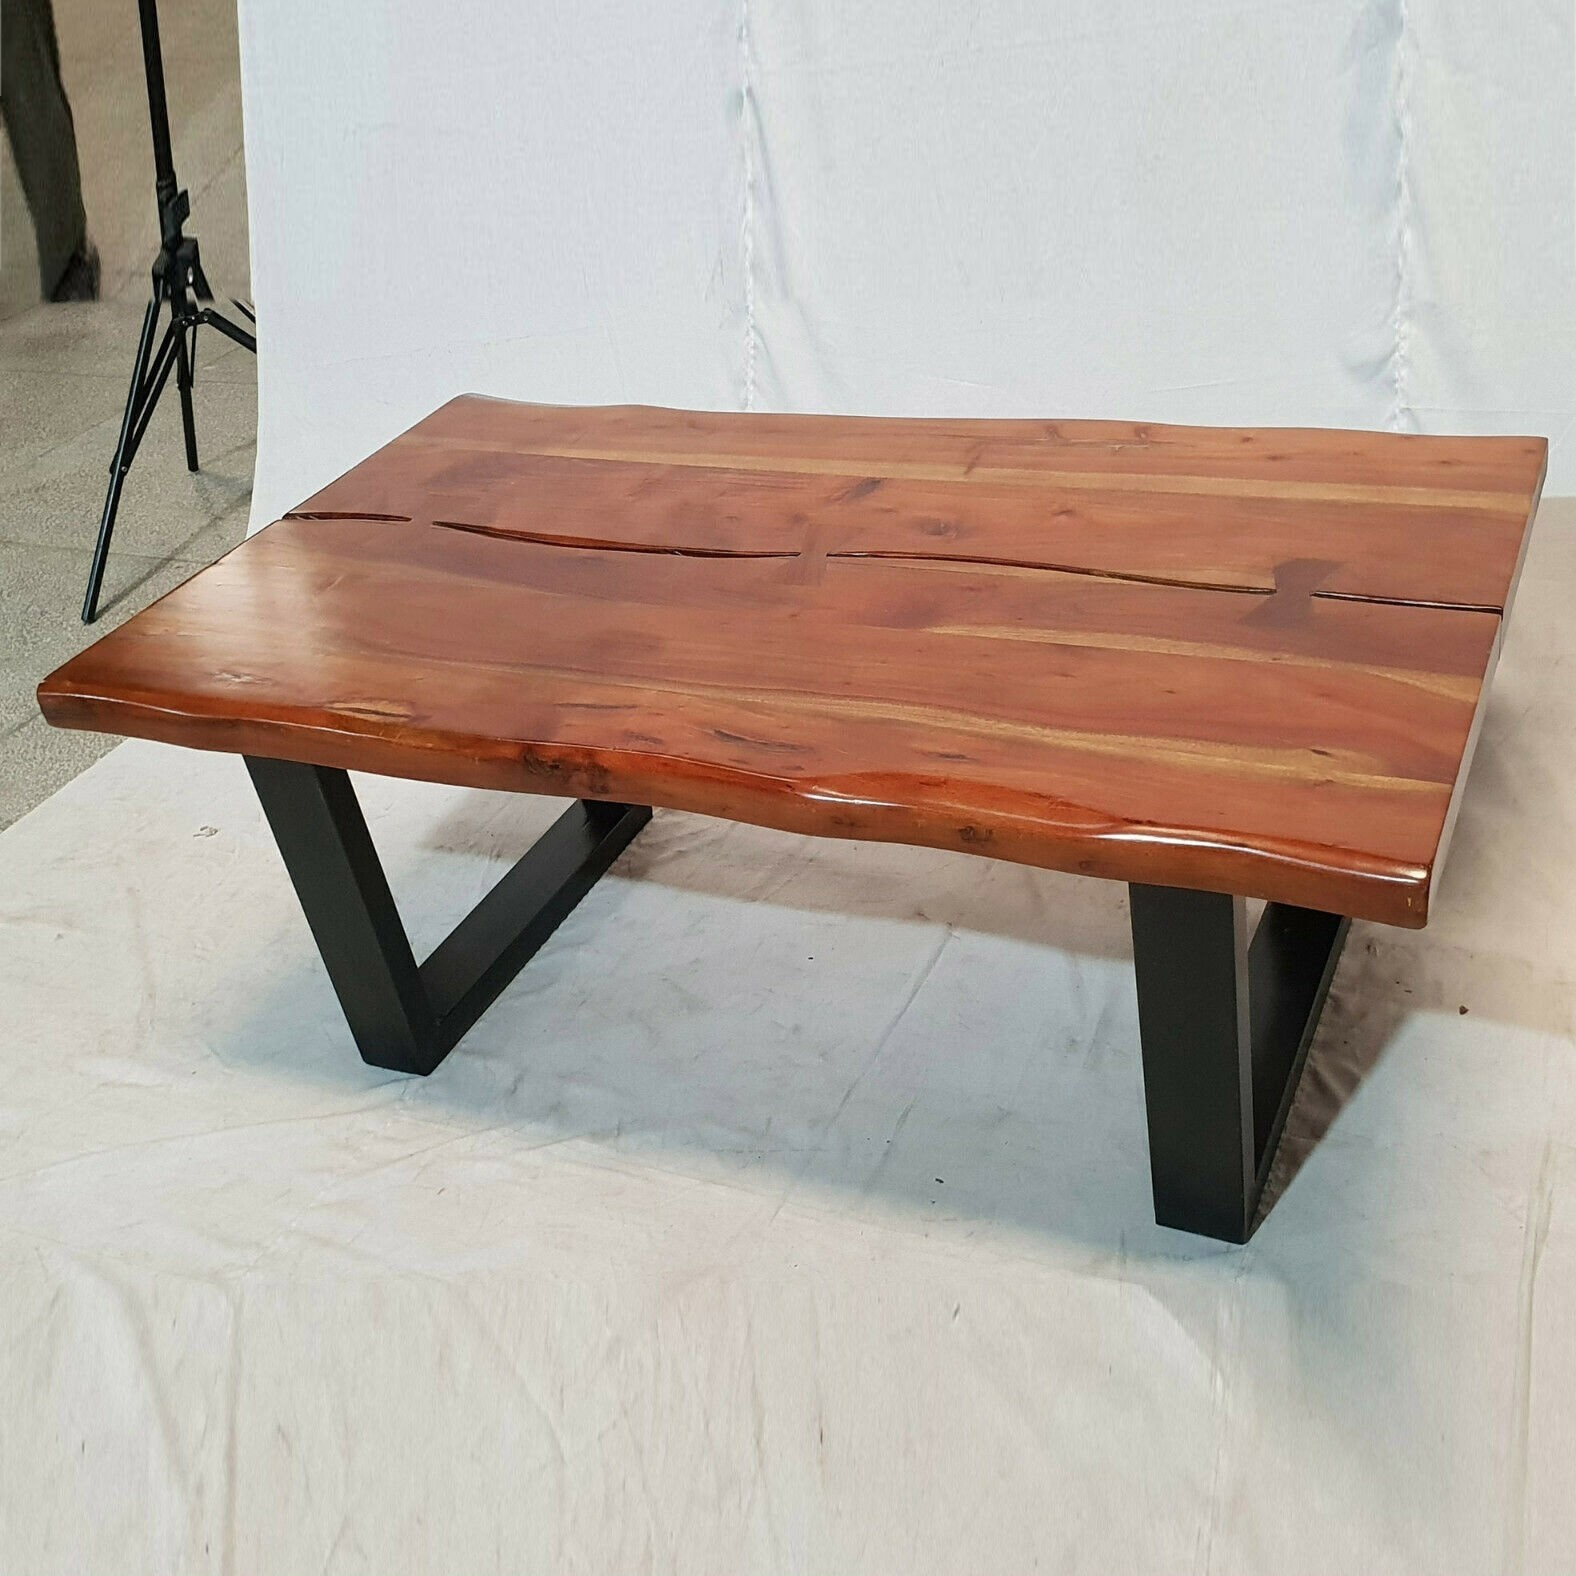 Picture of: Solid Acacia Wood Live Edge Coffee Table Industrial Metal Legs 122 X 76cm